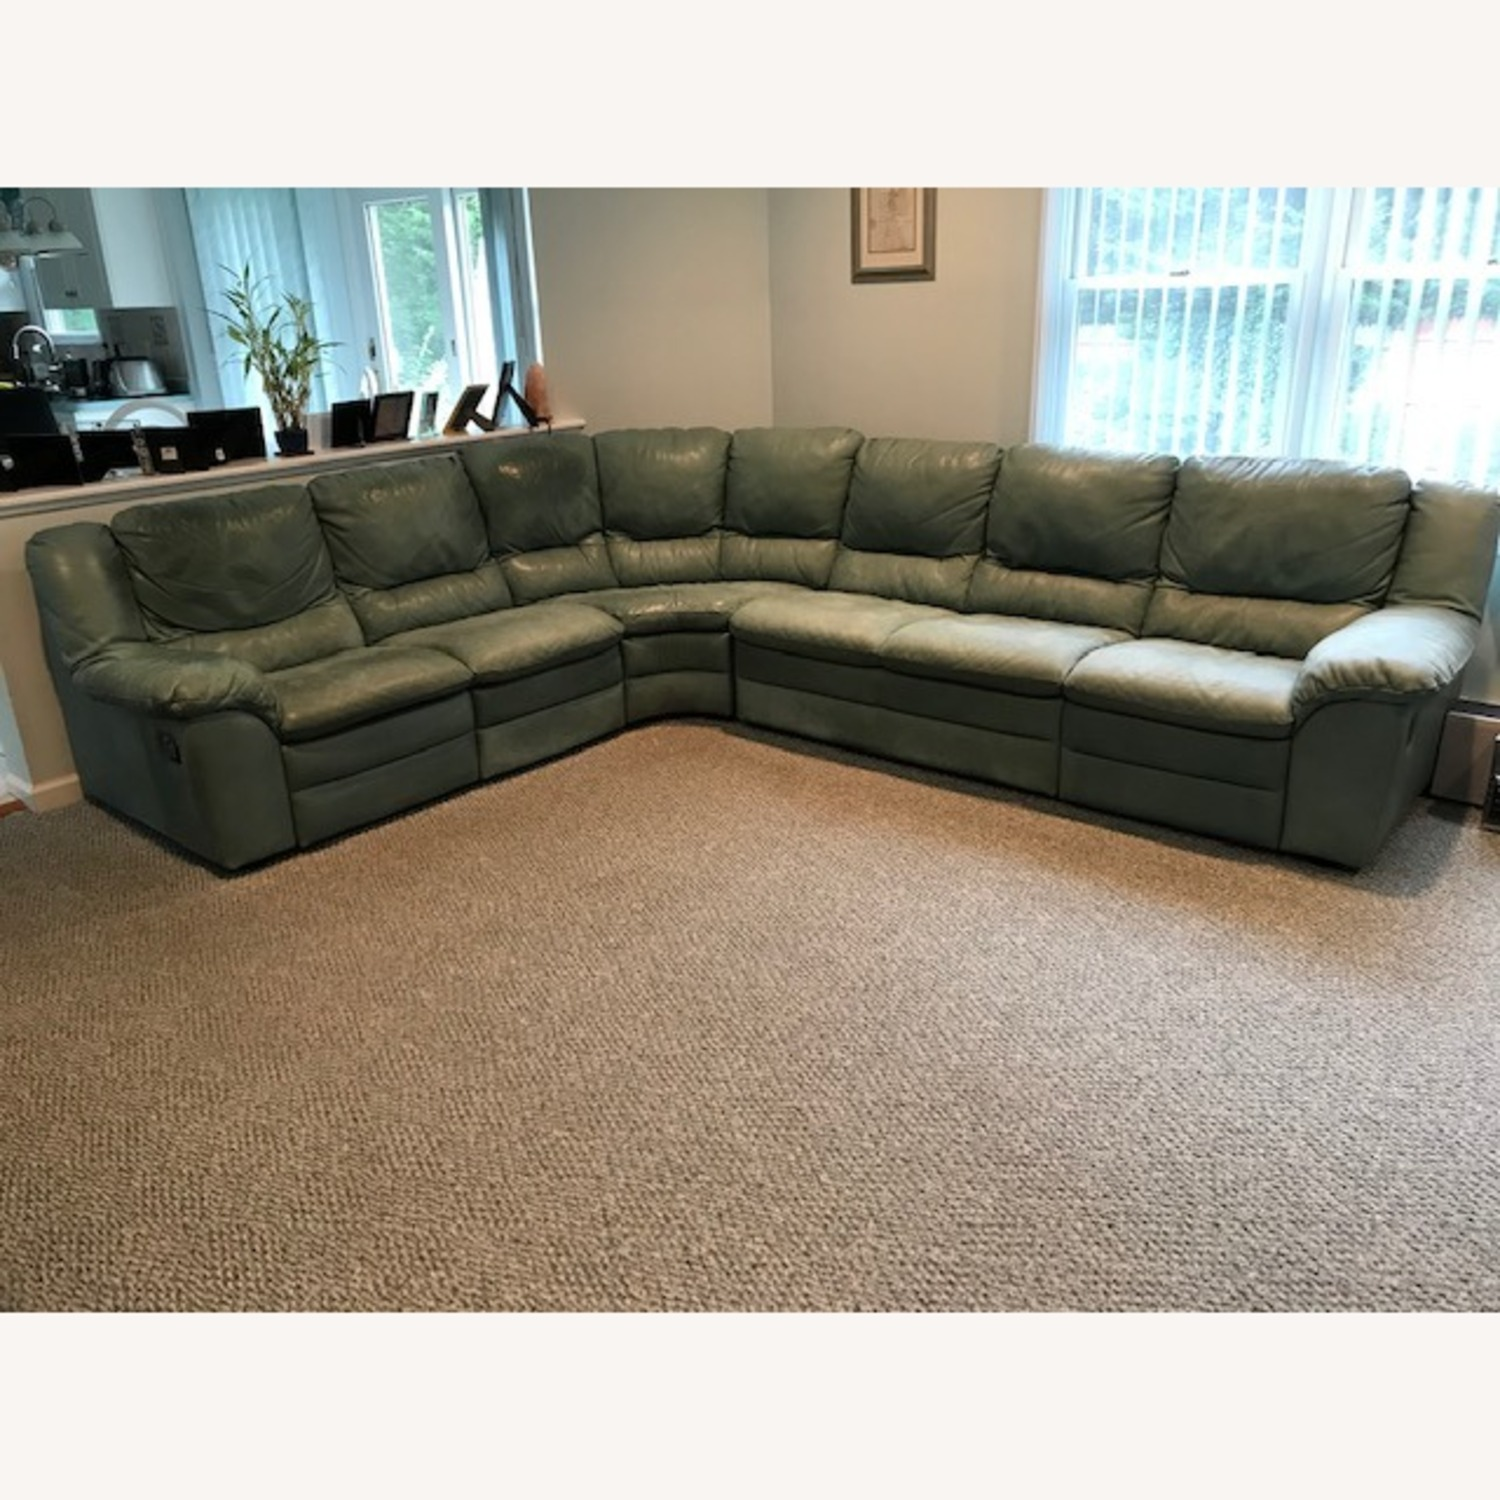 Natuzzi Teal Colored Sectional Couch - image-1